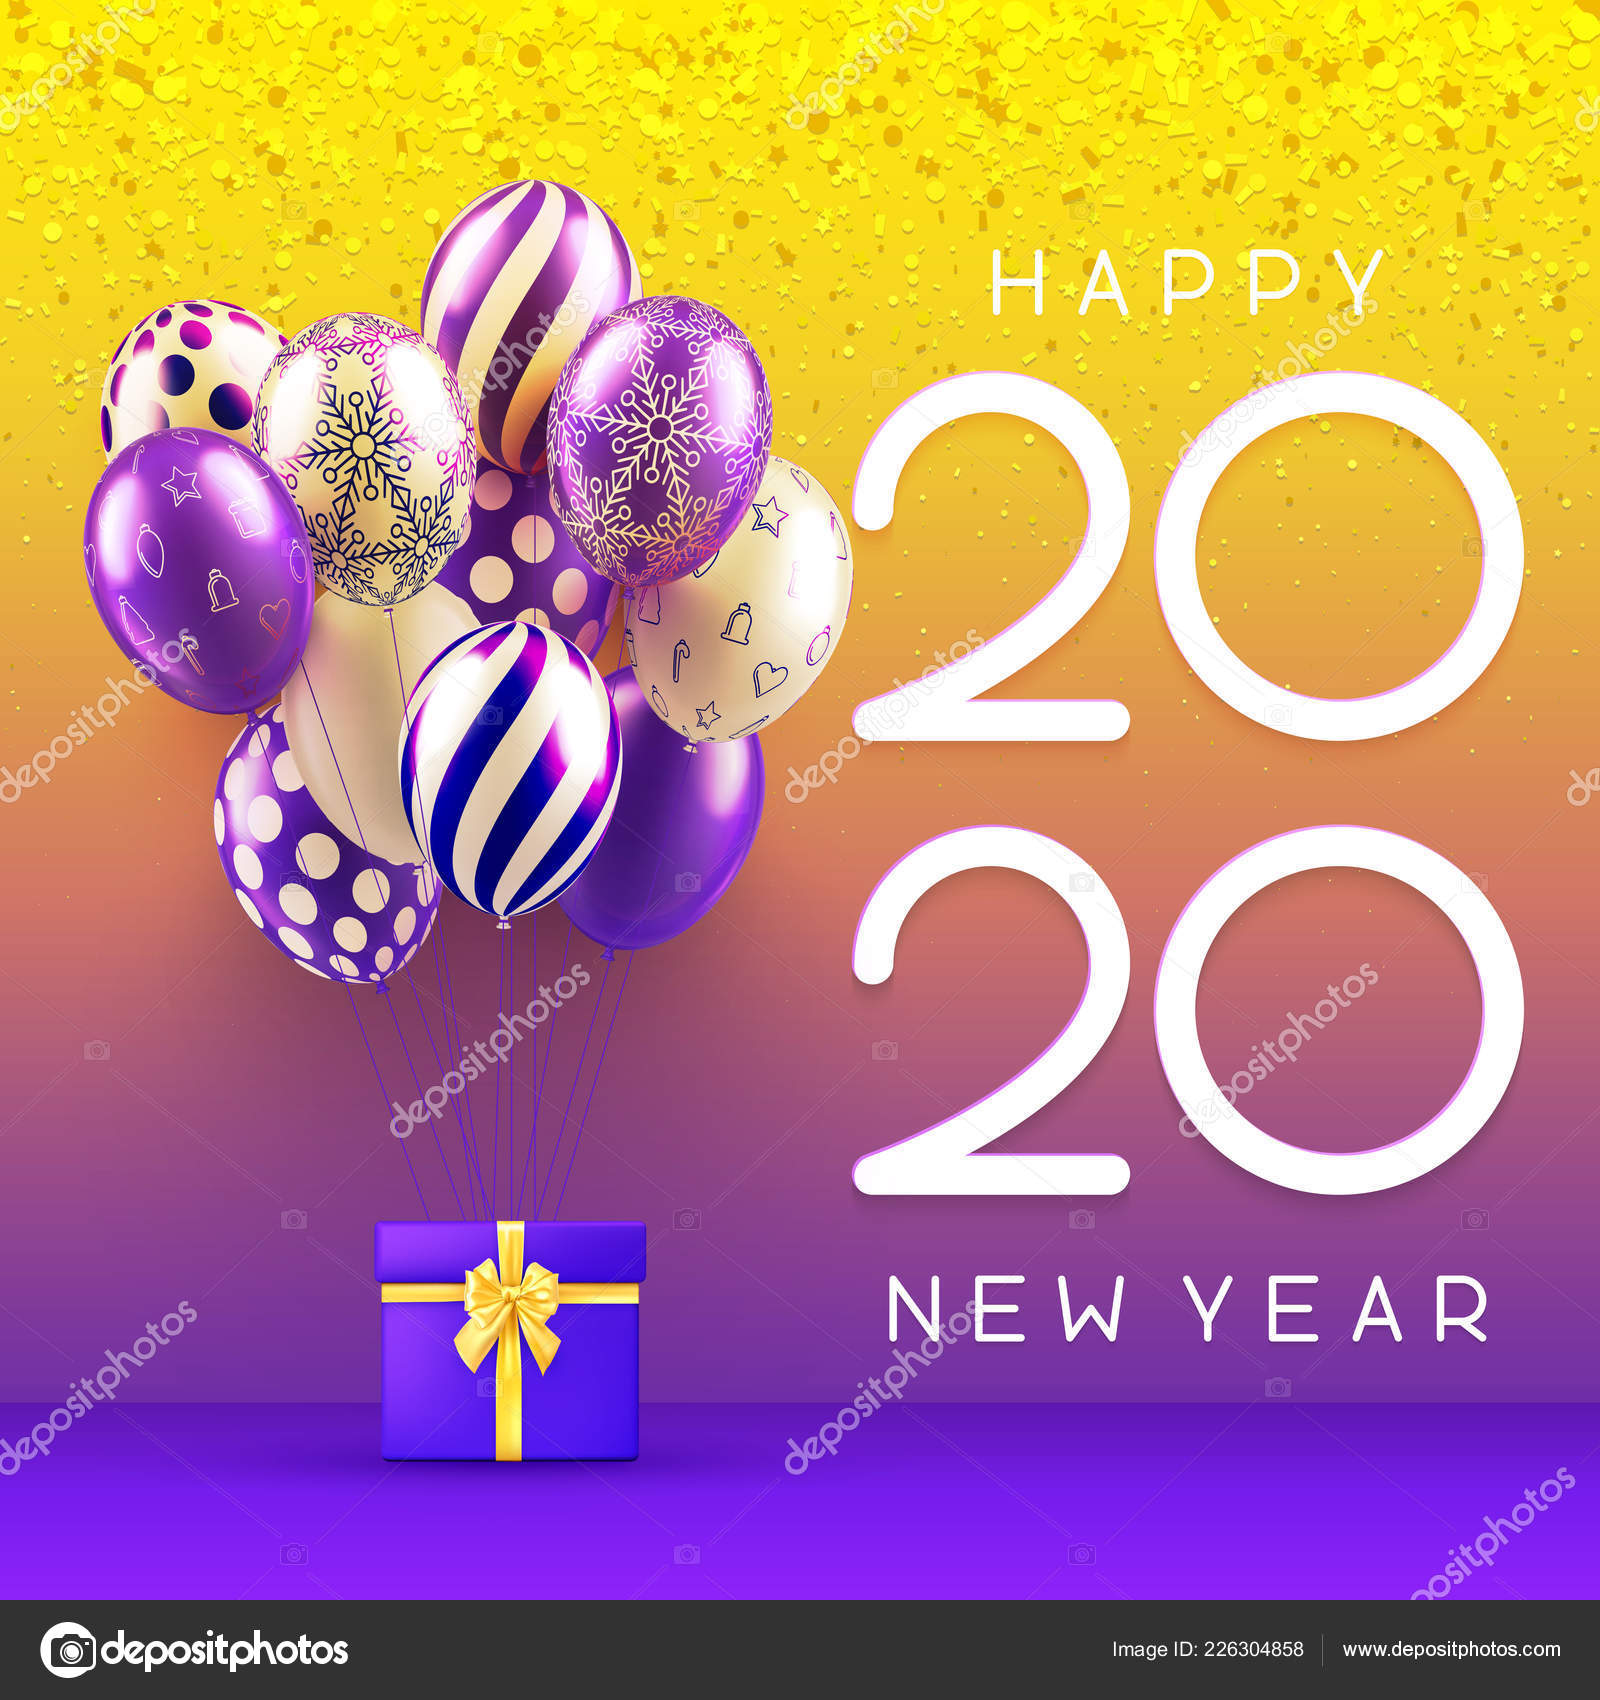 New Years Cards 2020 Happy New Year 2020 greeting card with gift and colorful balloon